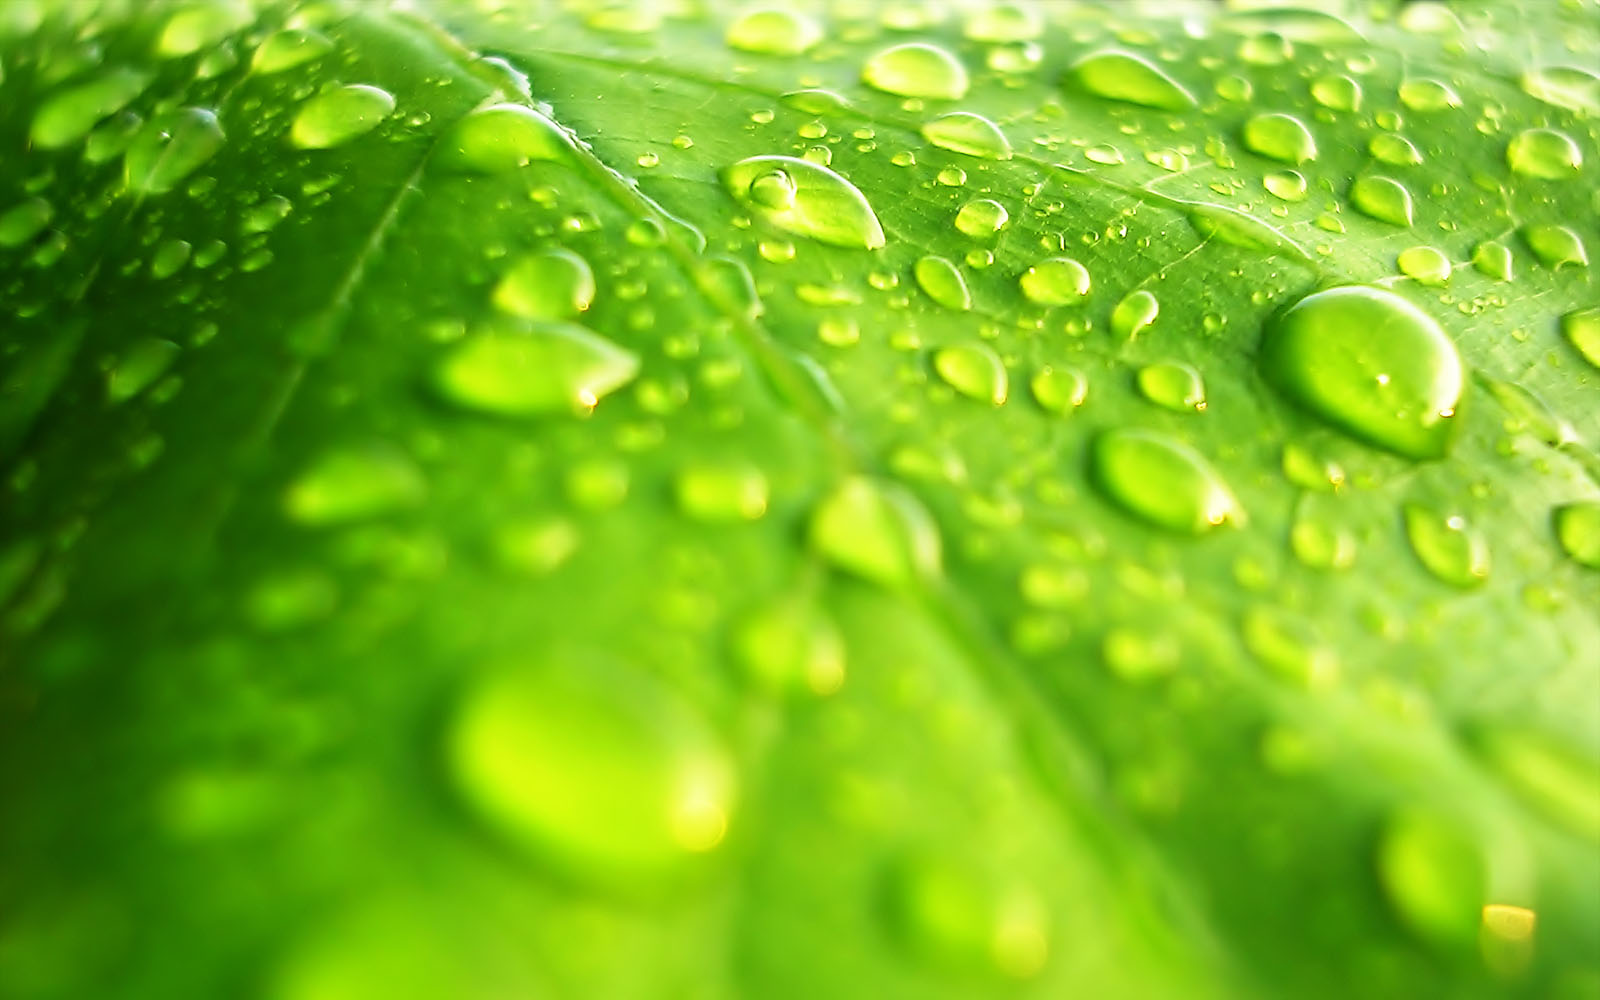 Water Drops on Leaf Wallpapers